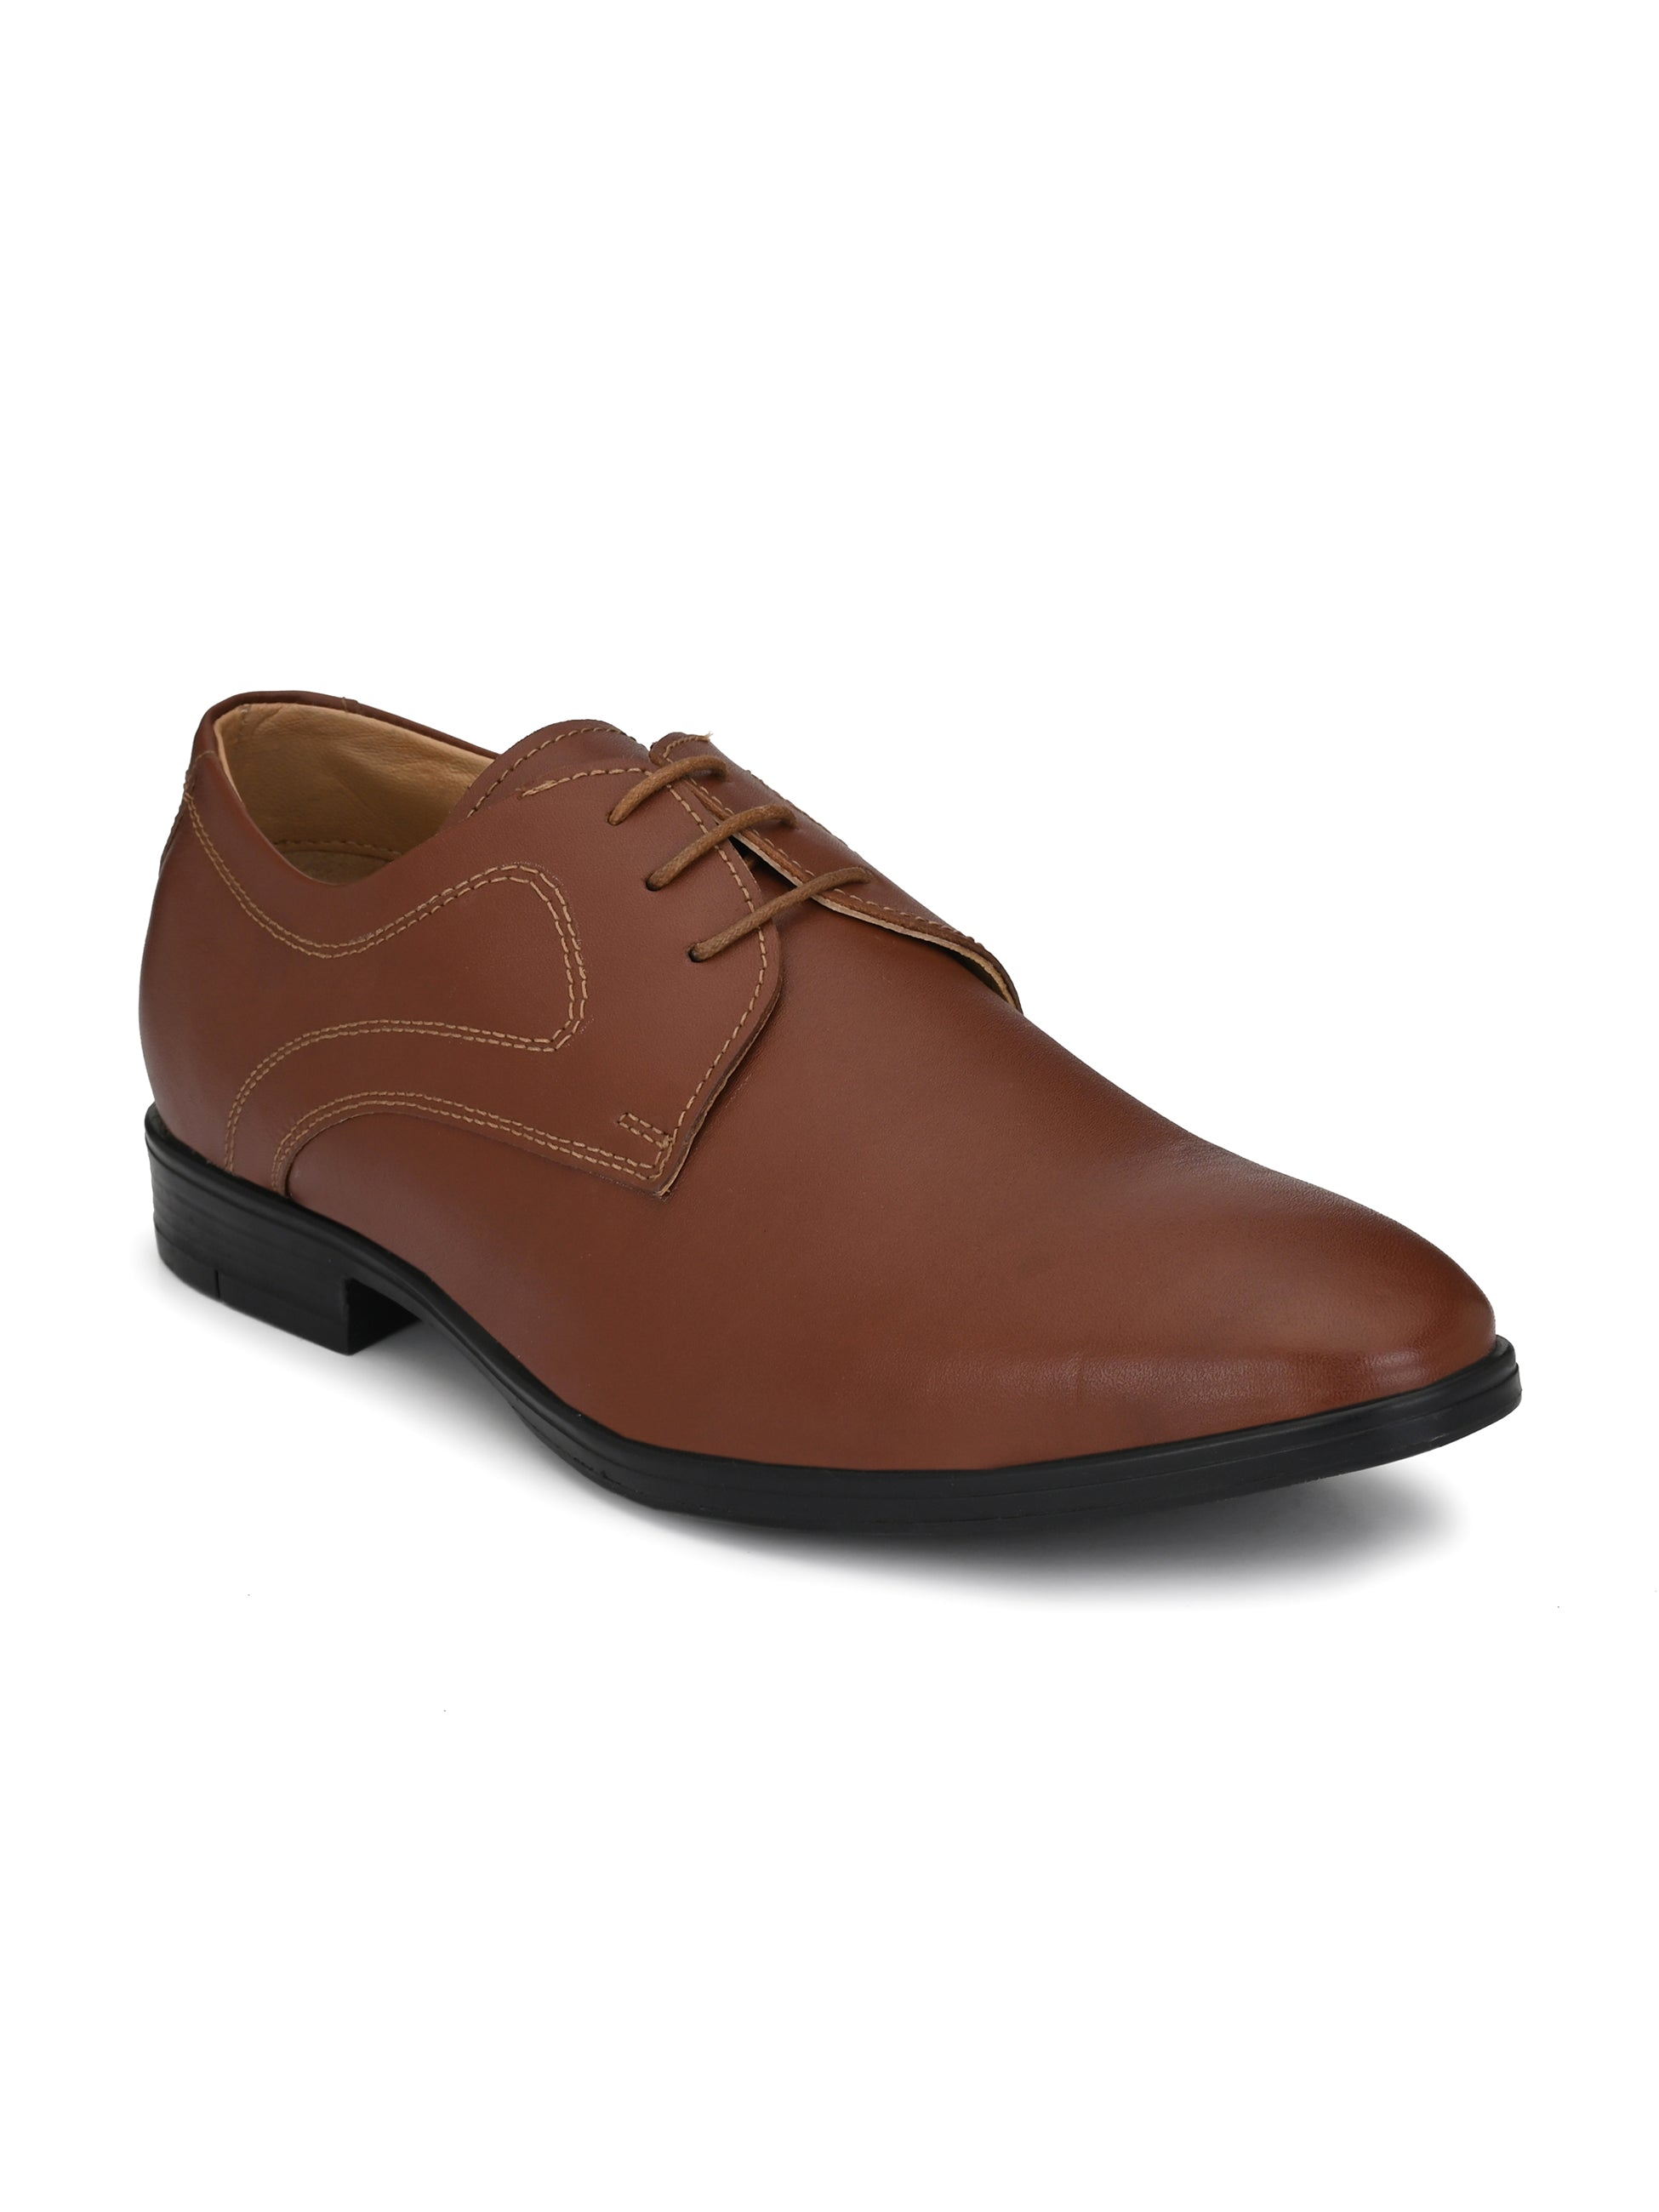 Brown Leather Debonair Shoes - shoegaro